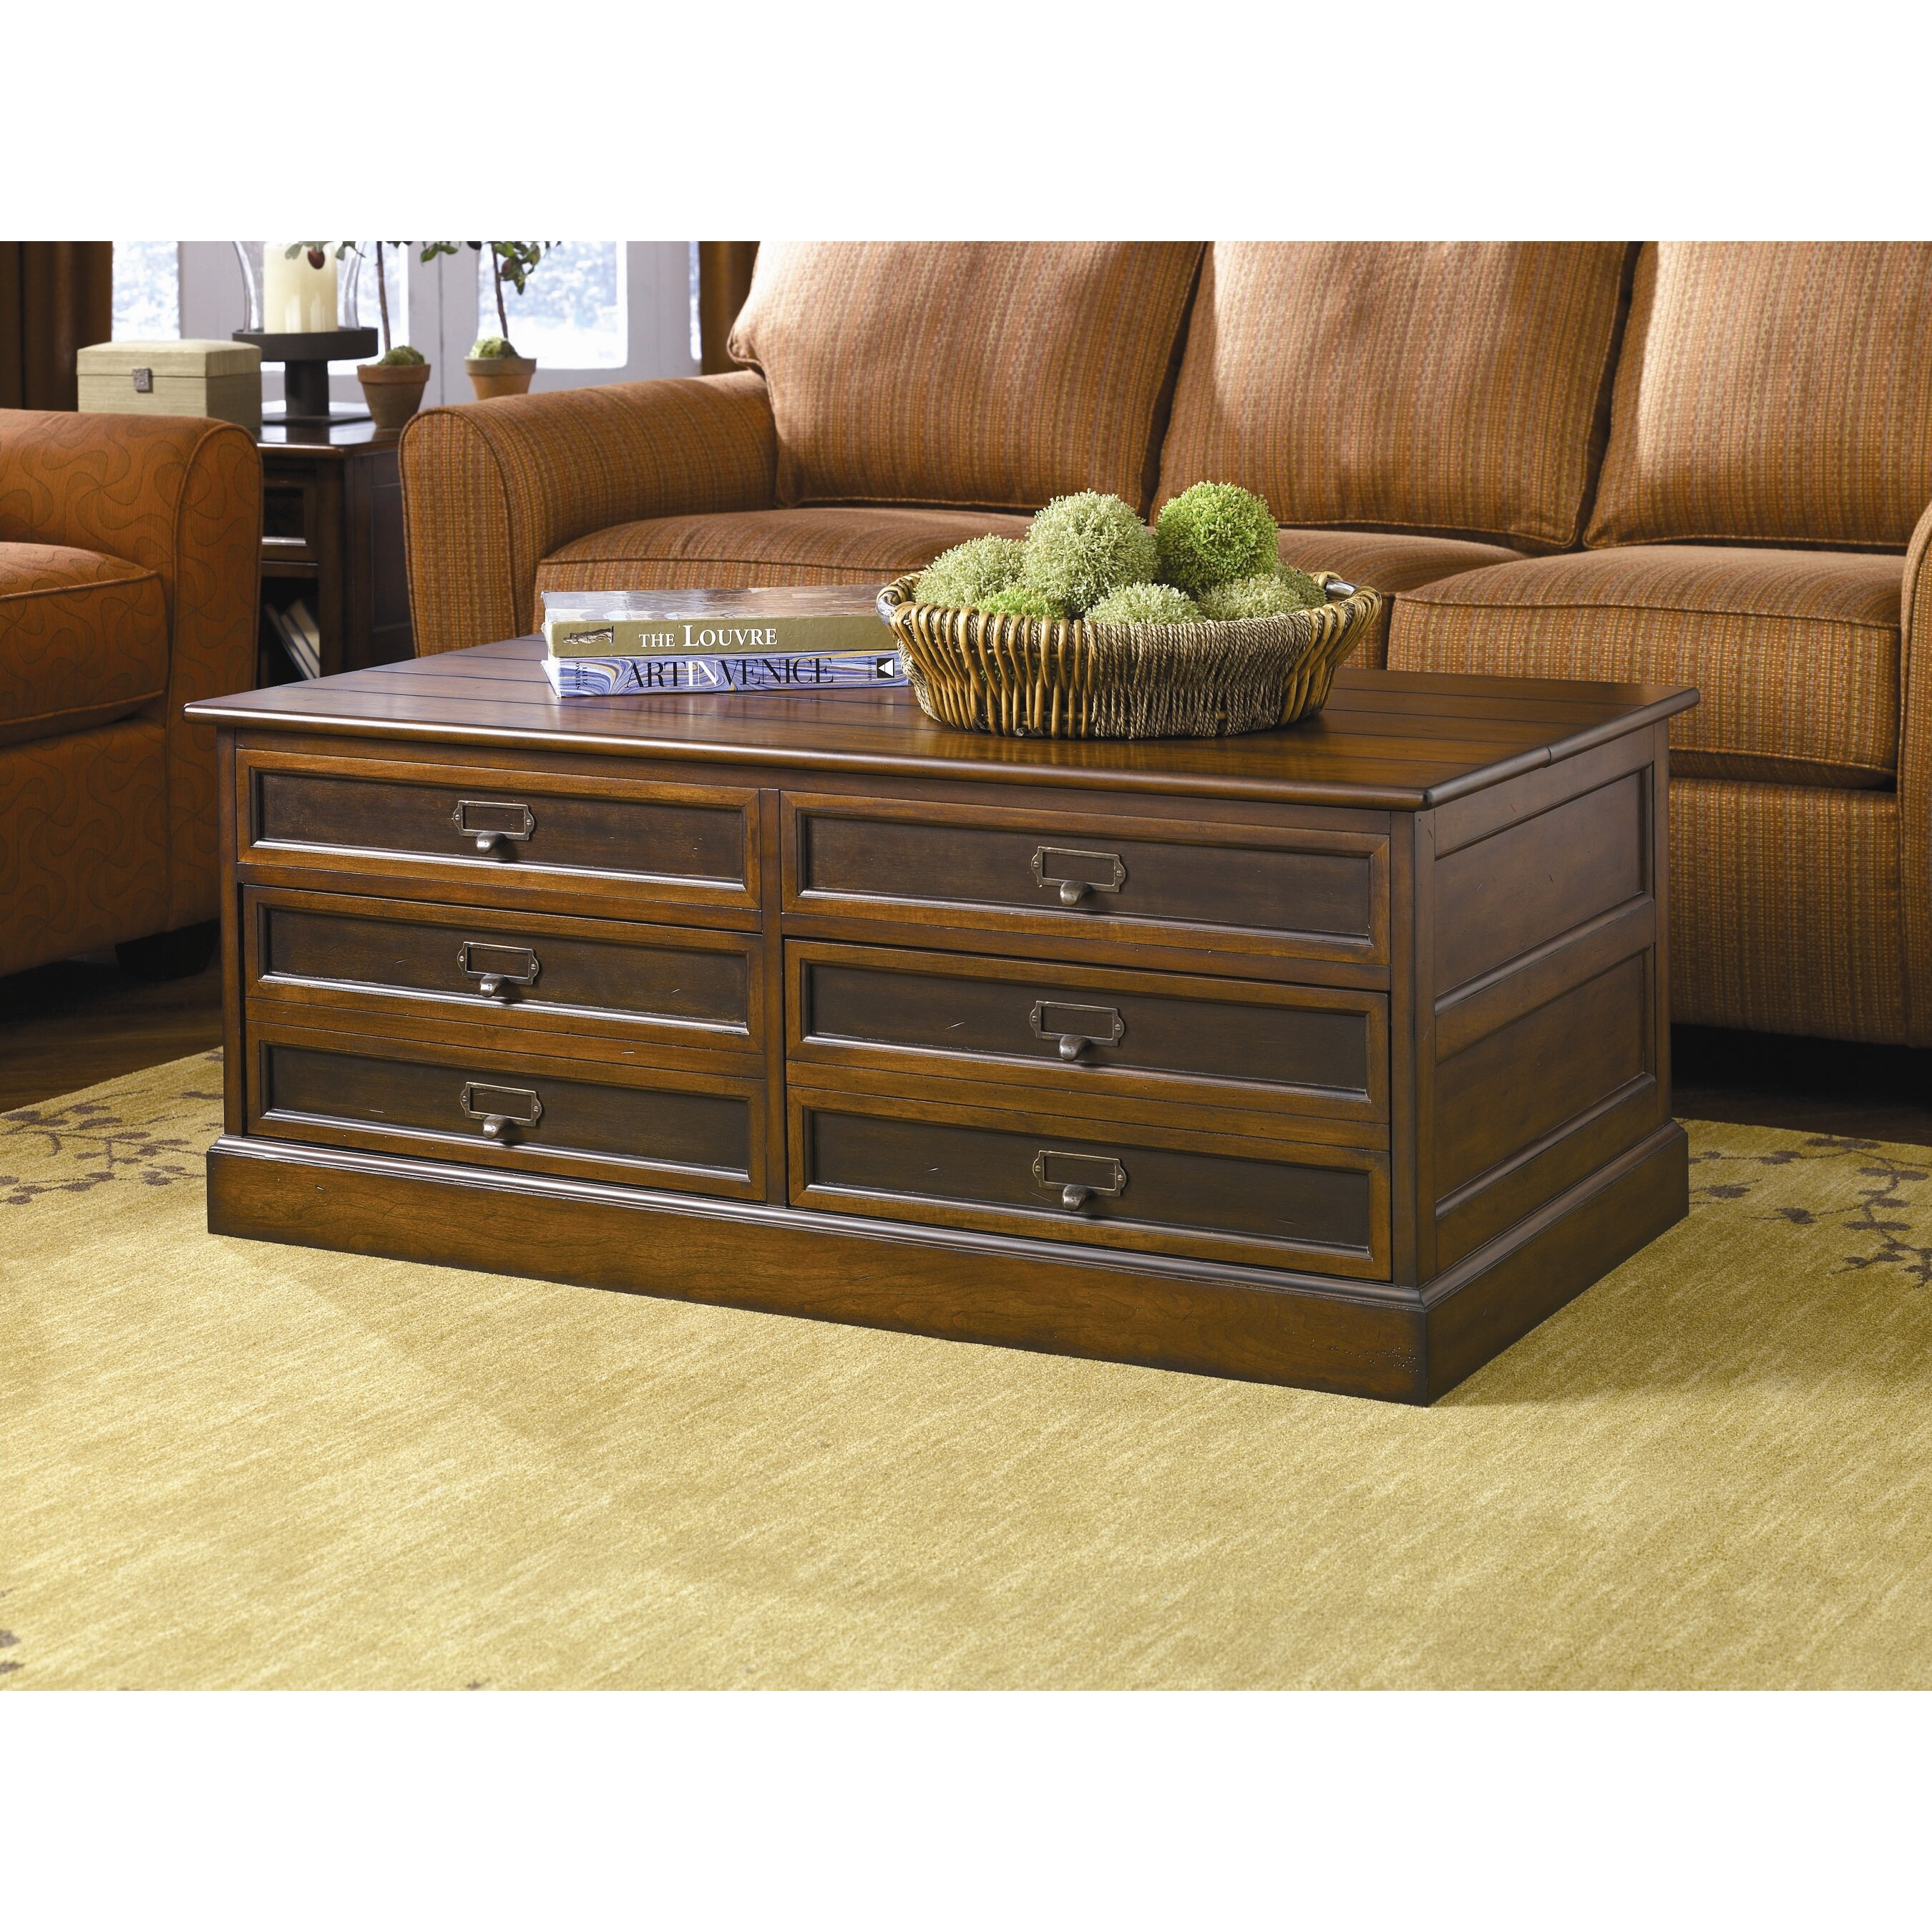 Espresso Coffee Table With Storage: Hammary Mercantile Storage Coffee Table Set & Reviews